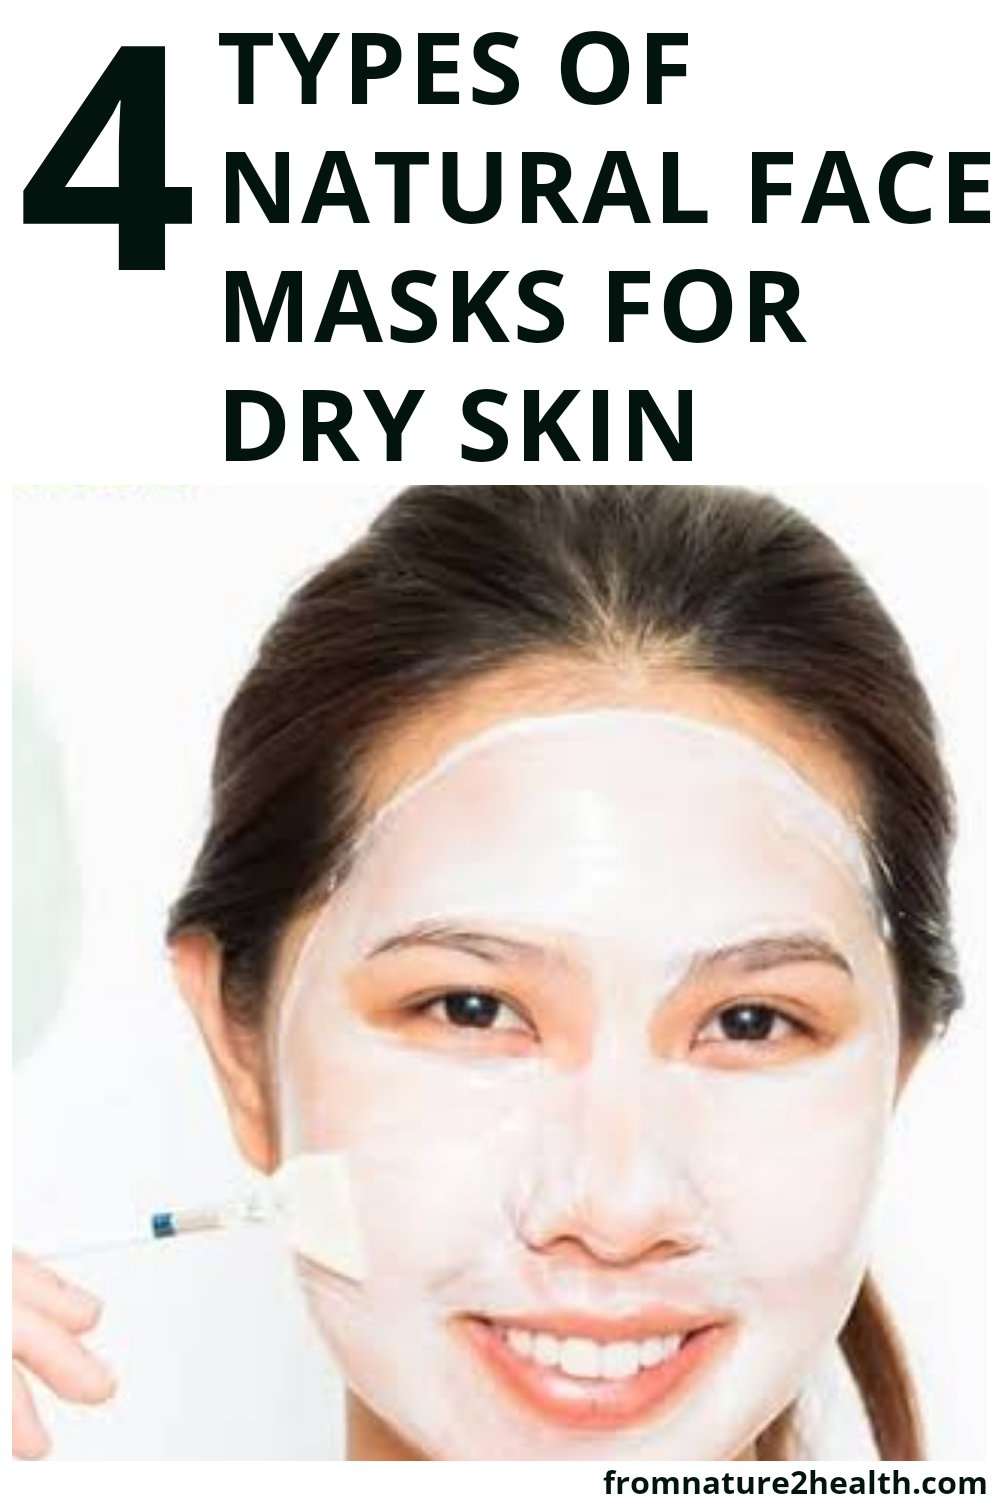 4 Types of Natural Face Masks for Dry Skin